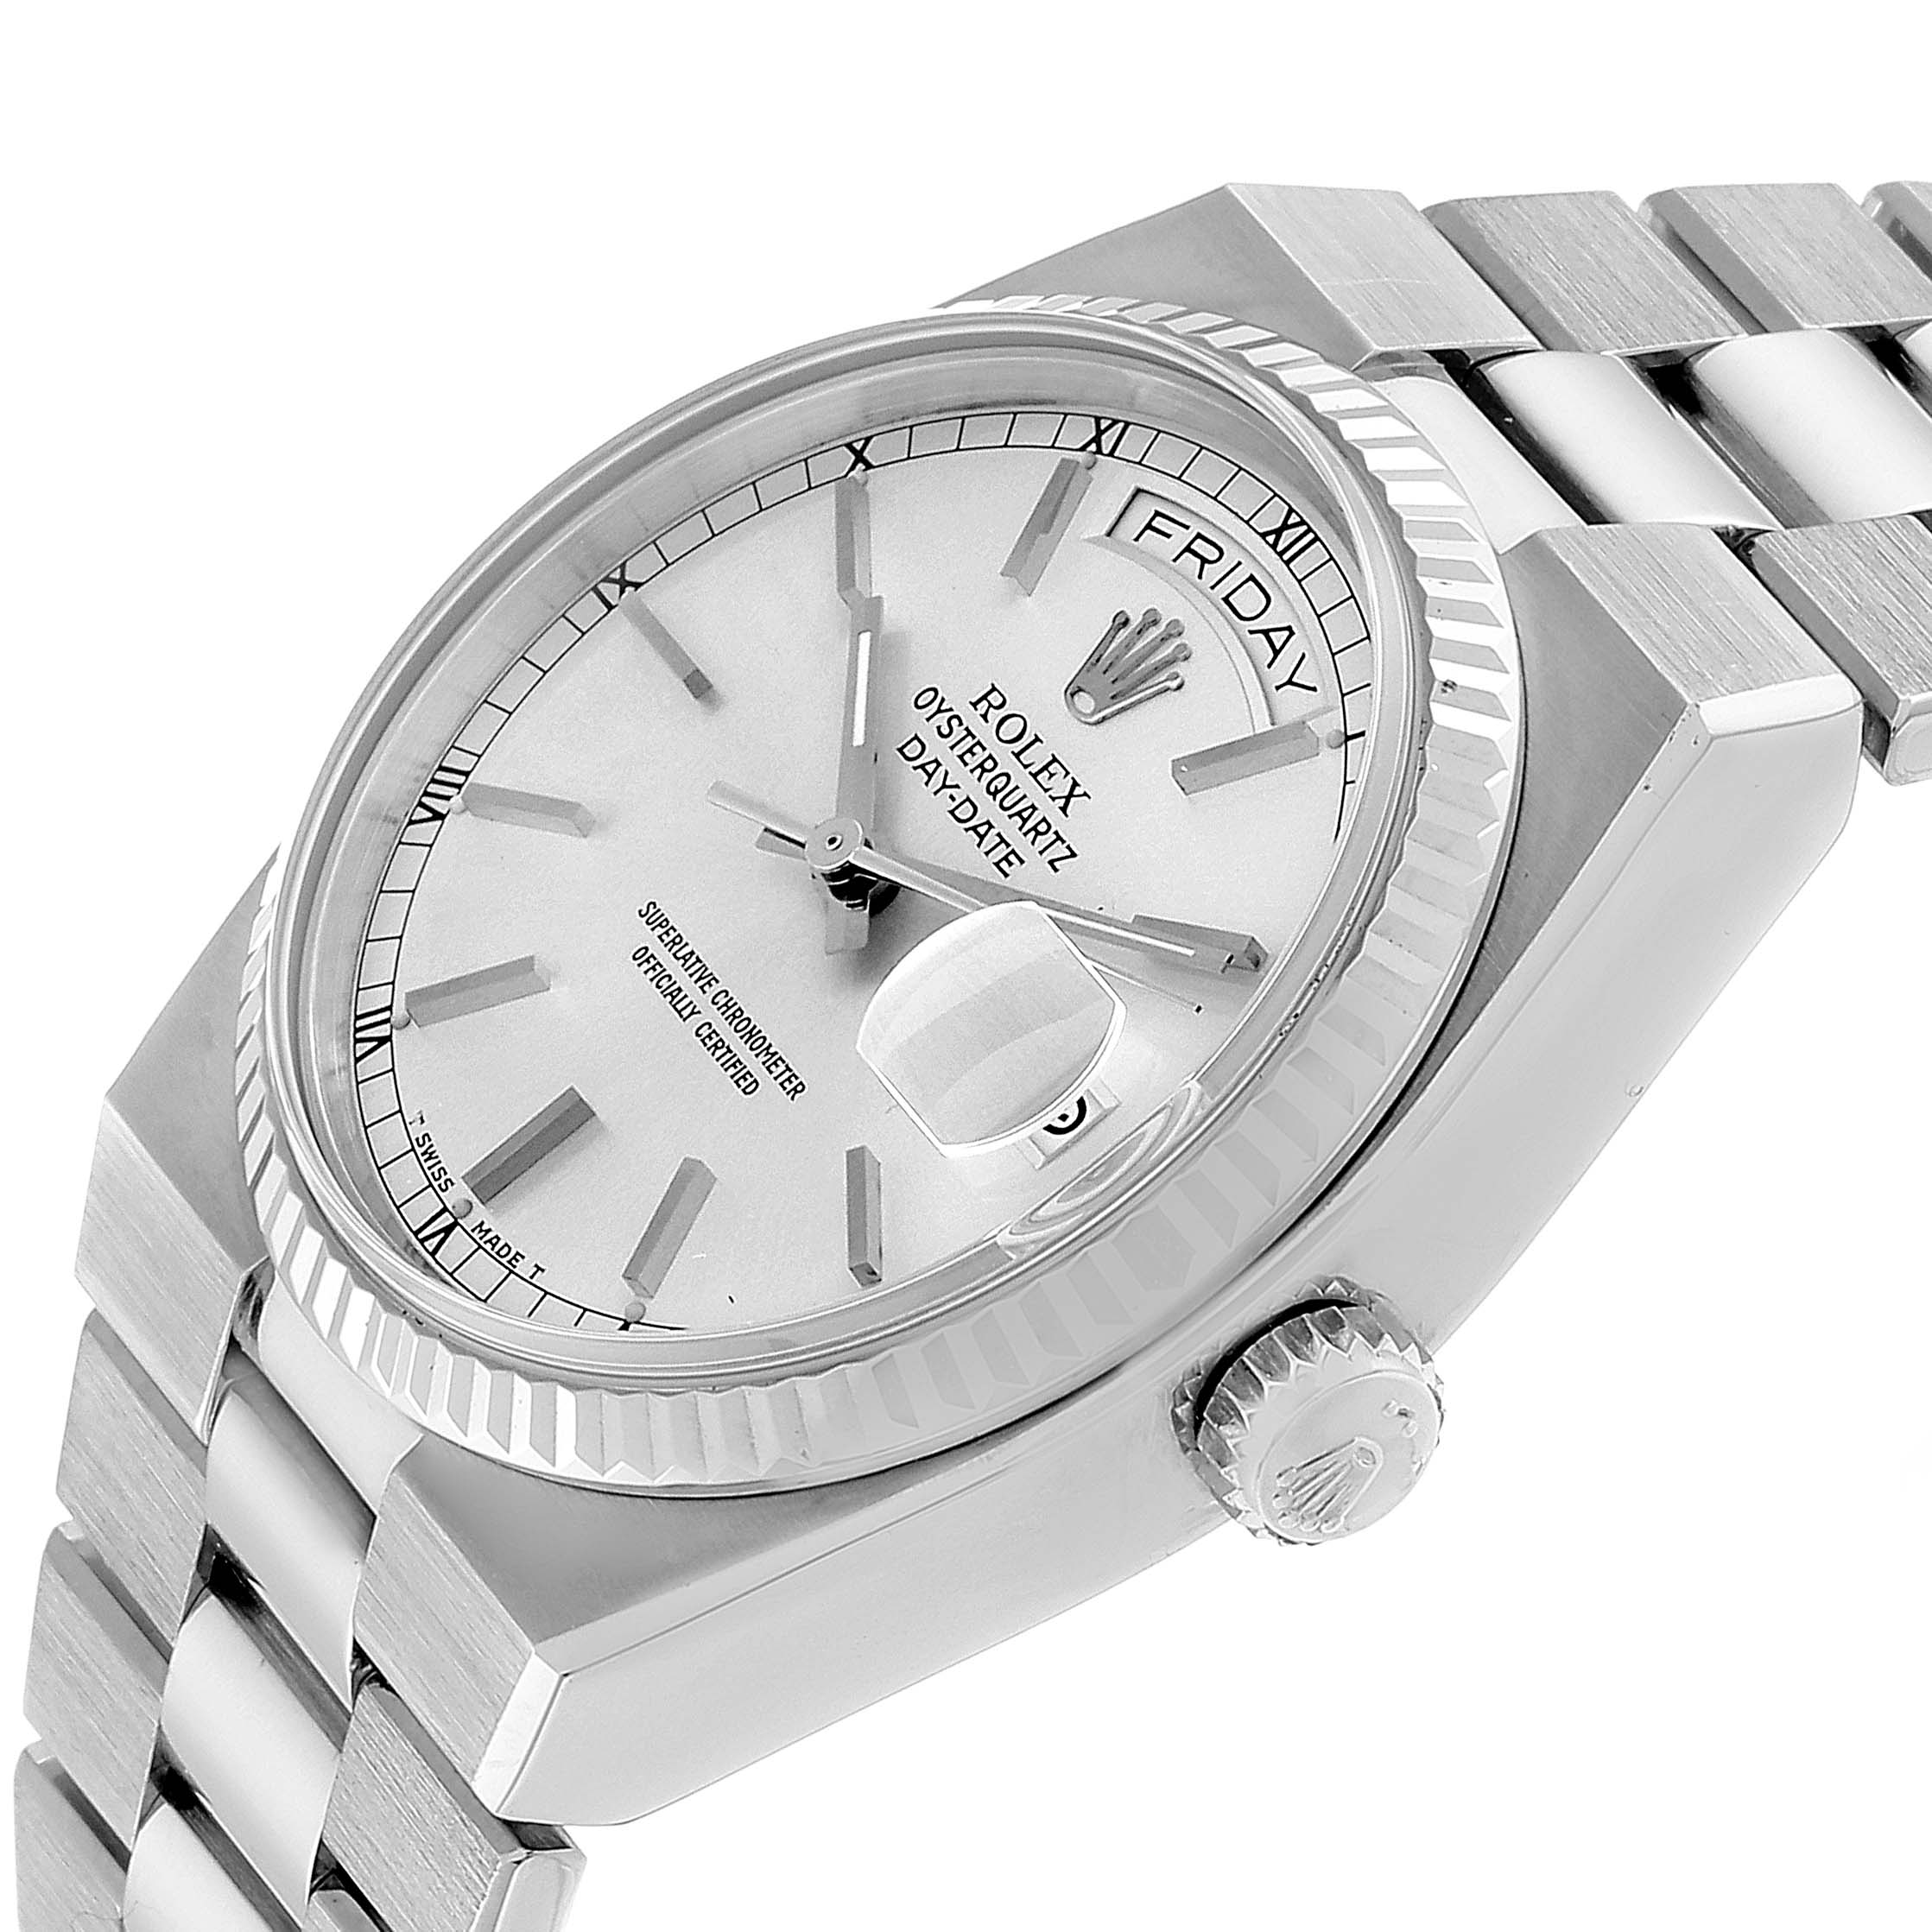 Rolex Oysterquartz President Day-Date White Gold Silver Dial Men's Watch 19019 SwissWatchExpo